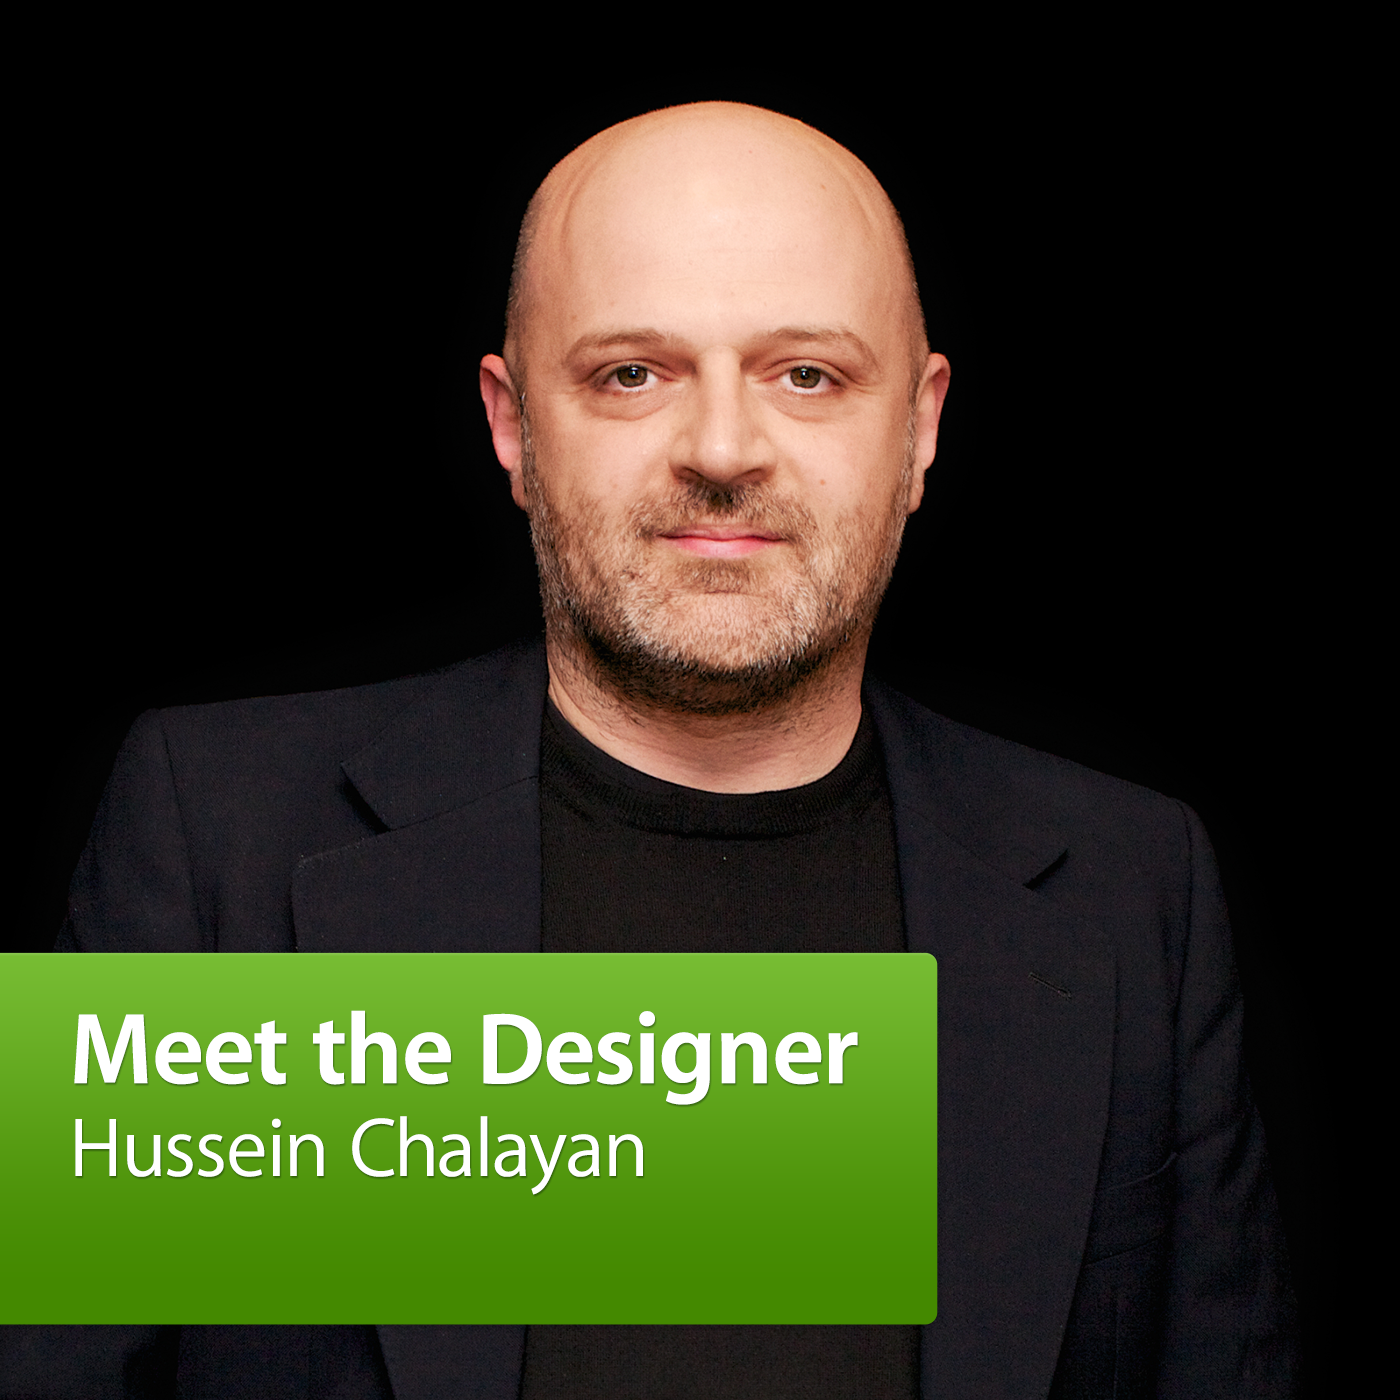 Hussein Chalayan: Meet The Designer